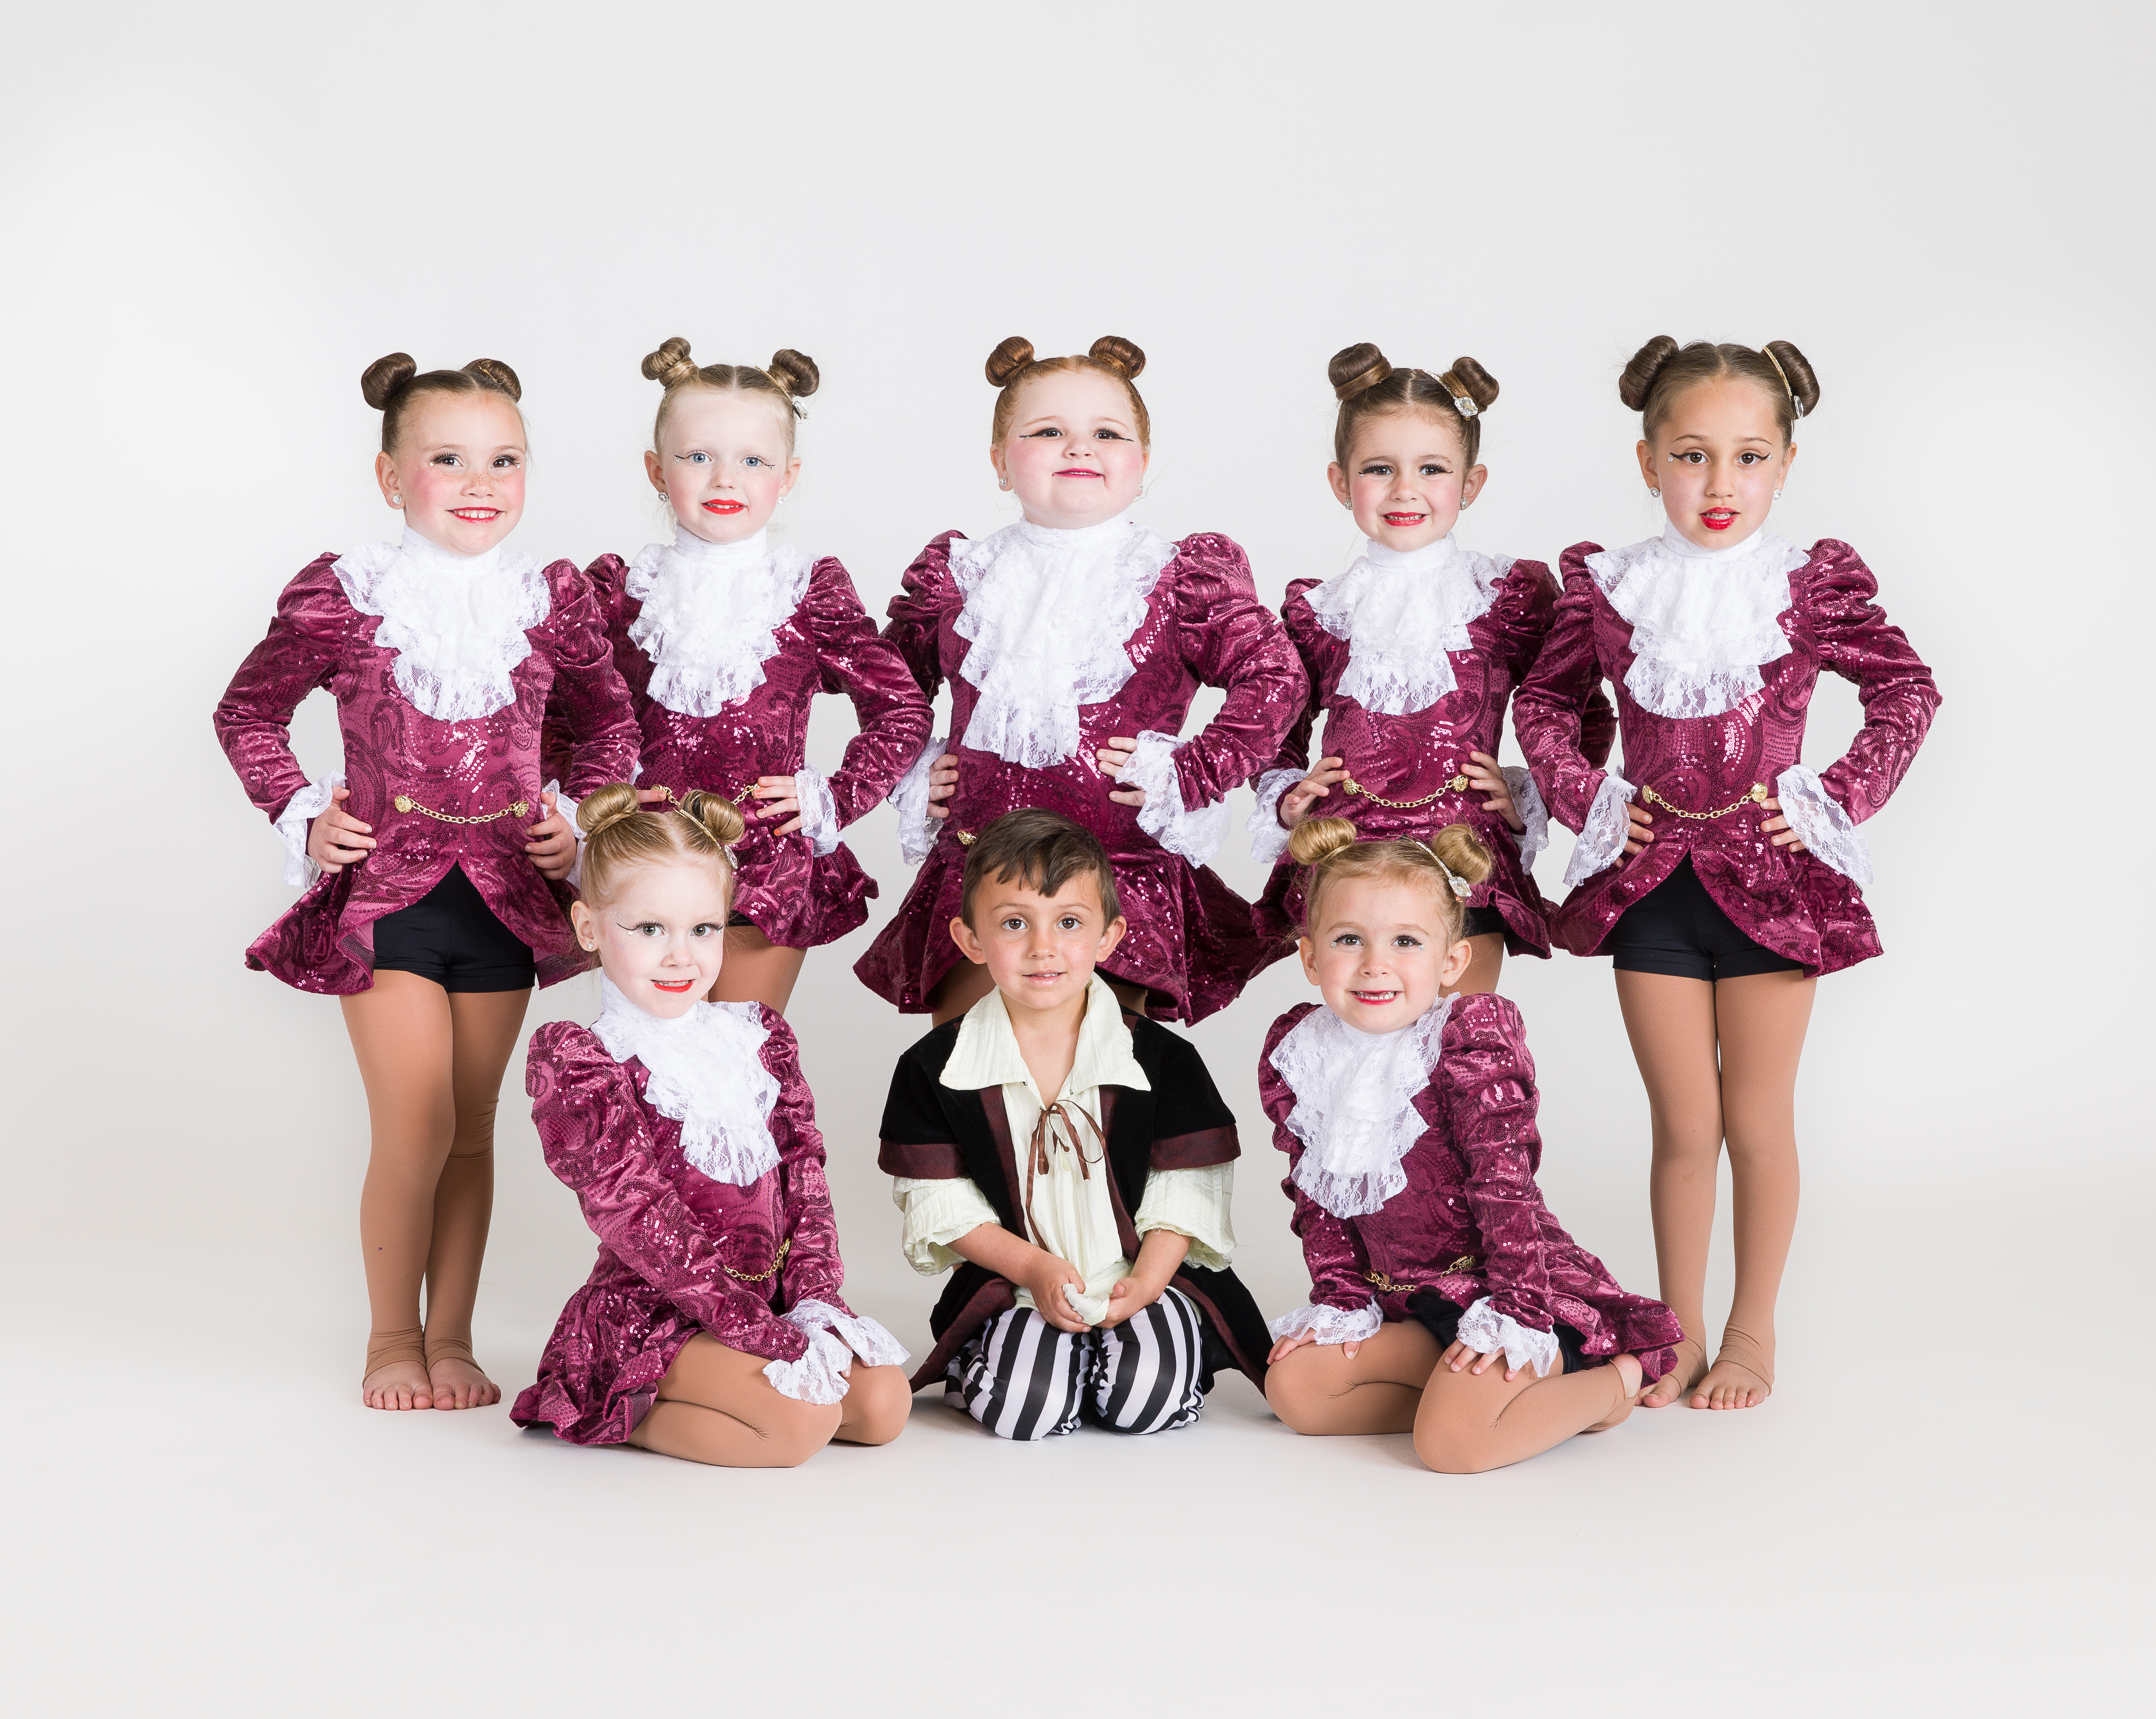 2019-4-13-the-dance-spot-recital3070-Pri